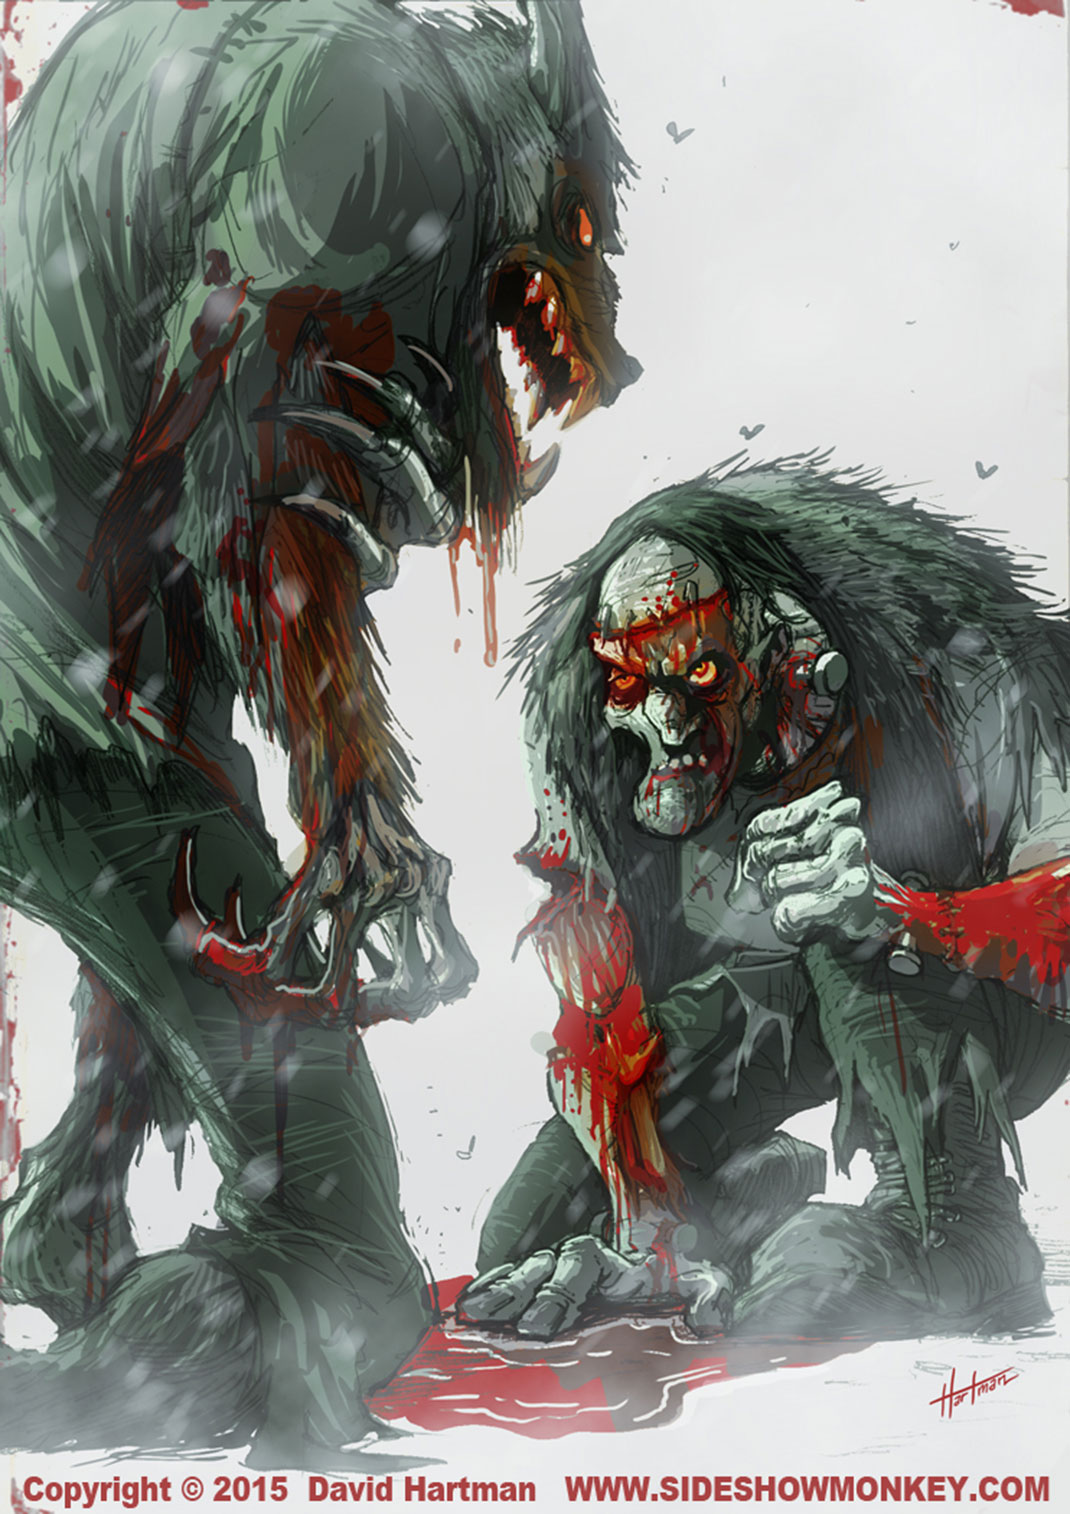 winter_bloodbath_by_hartman_by_sideshowmonkey-d8dp6ht